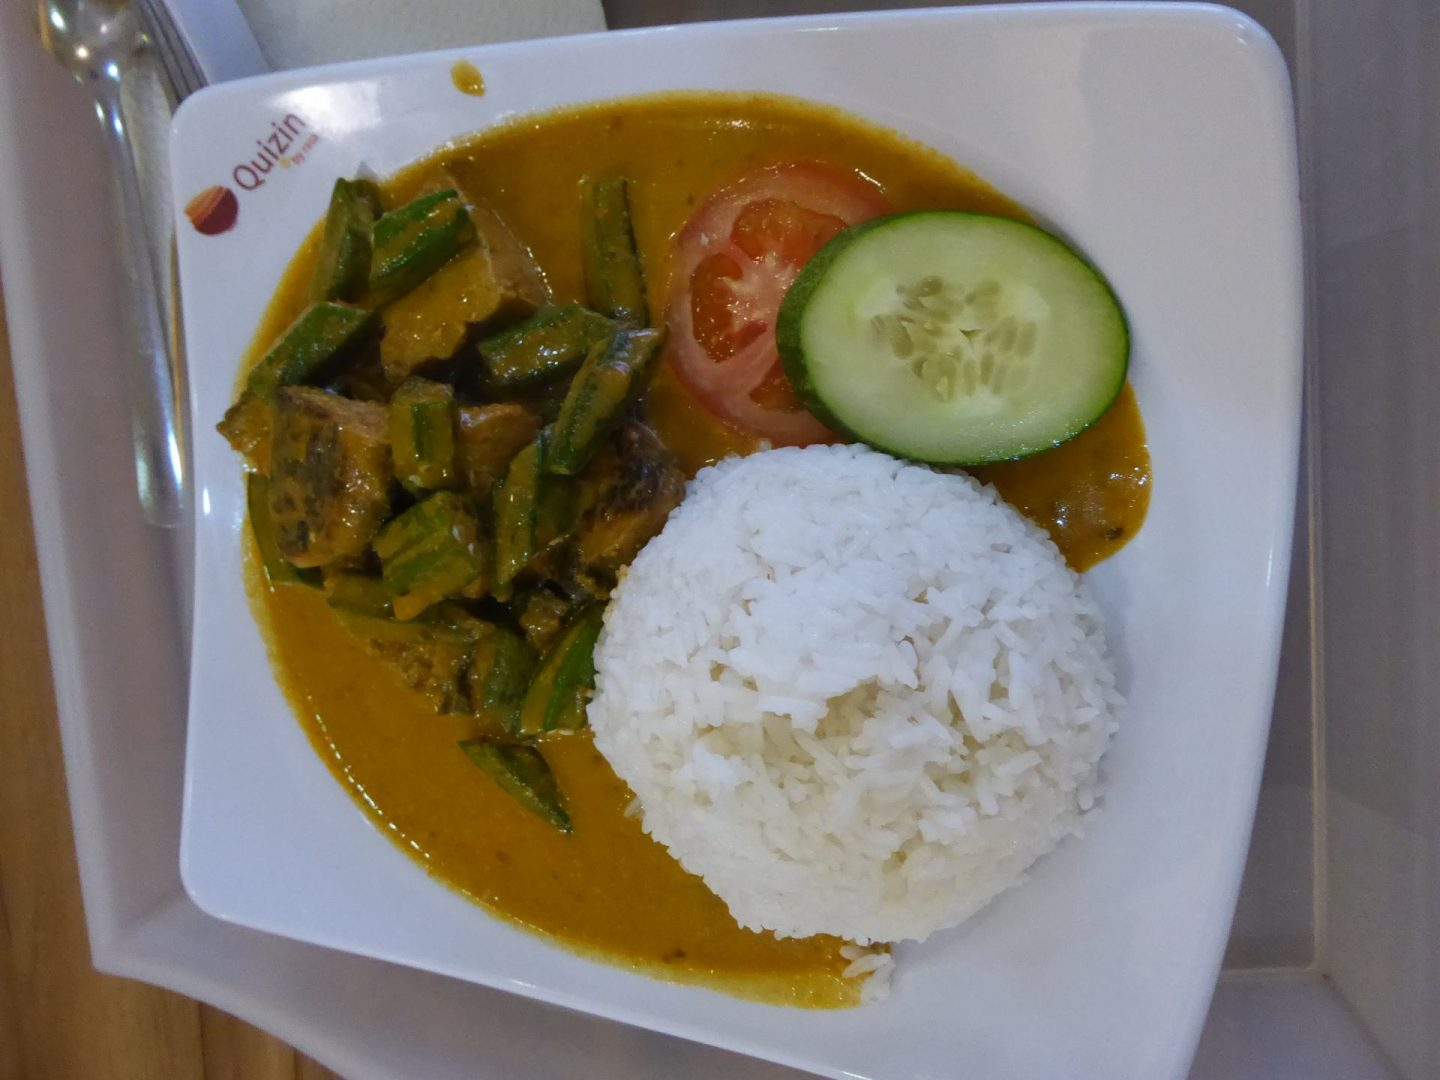 Malaysian curry in a bowel, including rice, tomato, cucumber